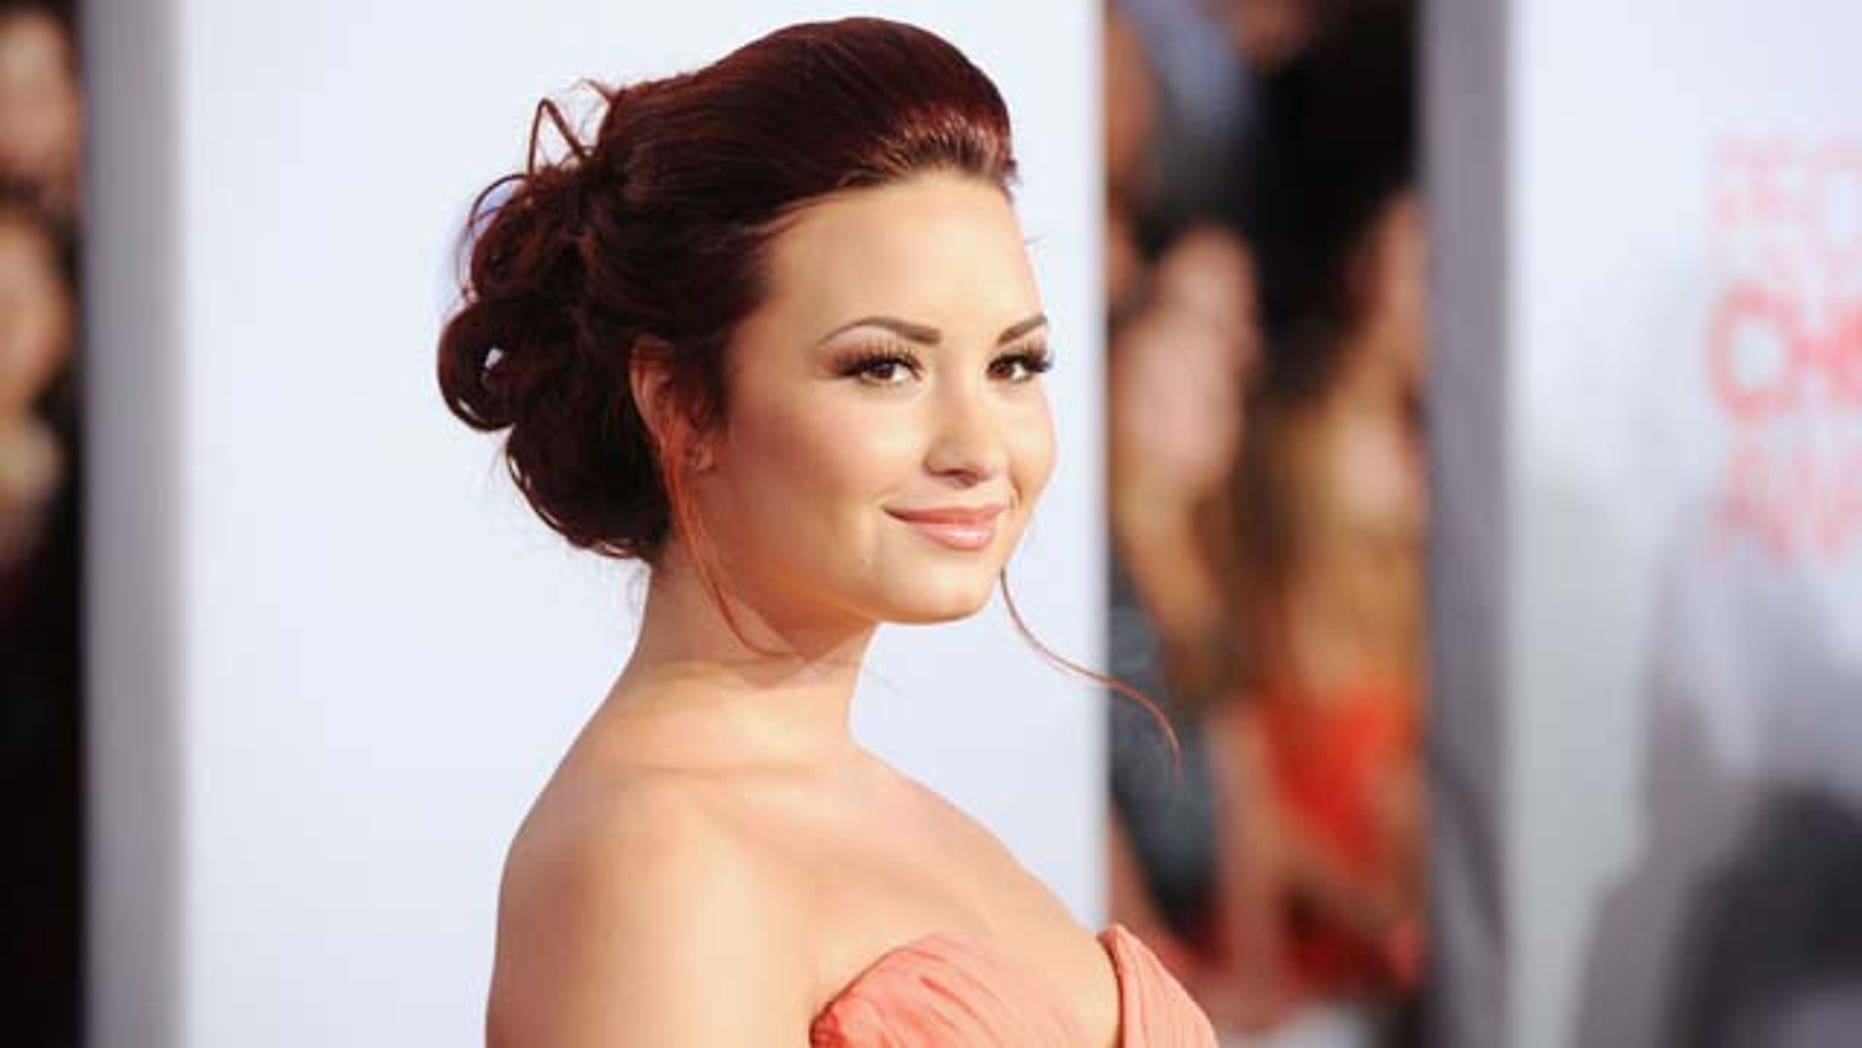 Jan. 11, 2012: Demi Lovato arrives at the 2012 People's Choice Awards held at Nokia Theatre in Los Angeles, Calif.